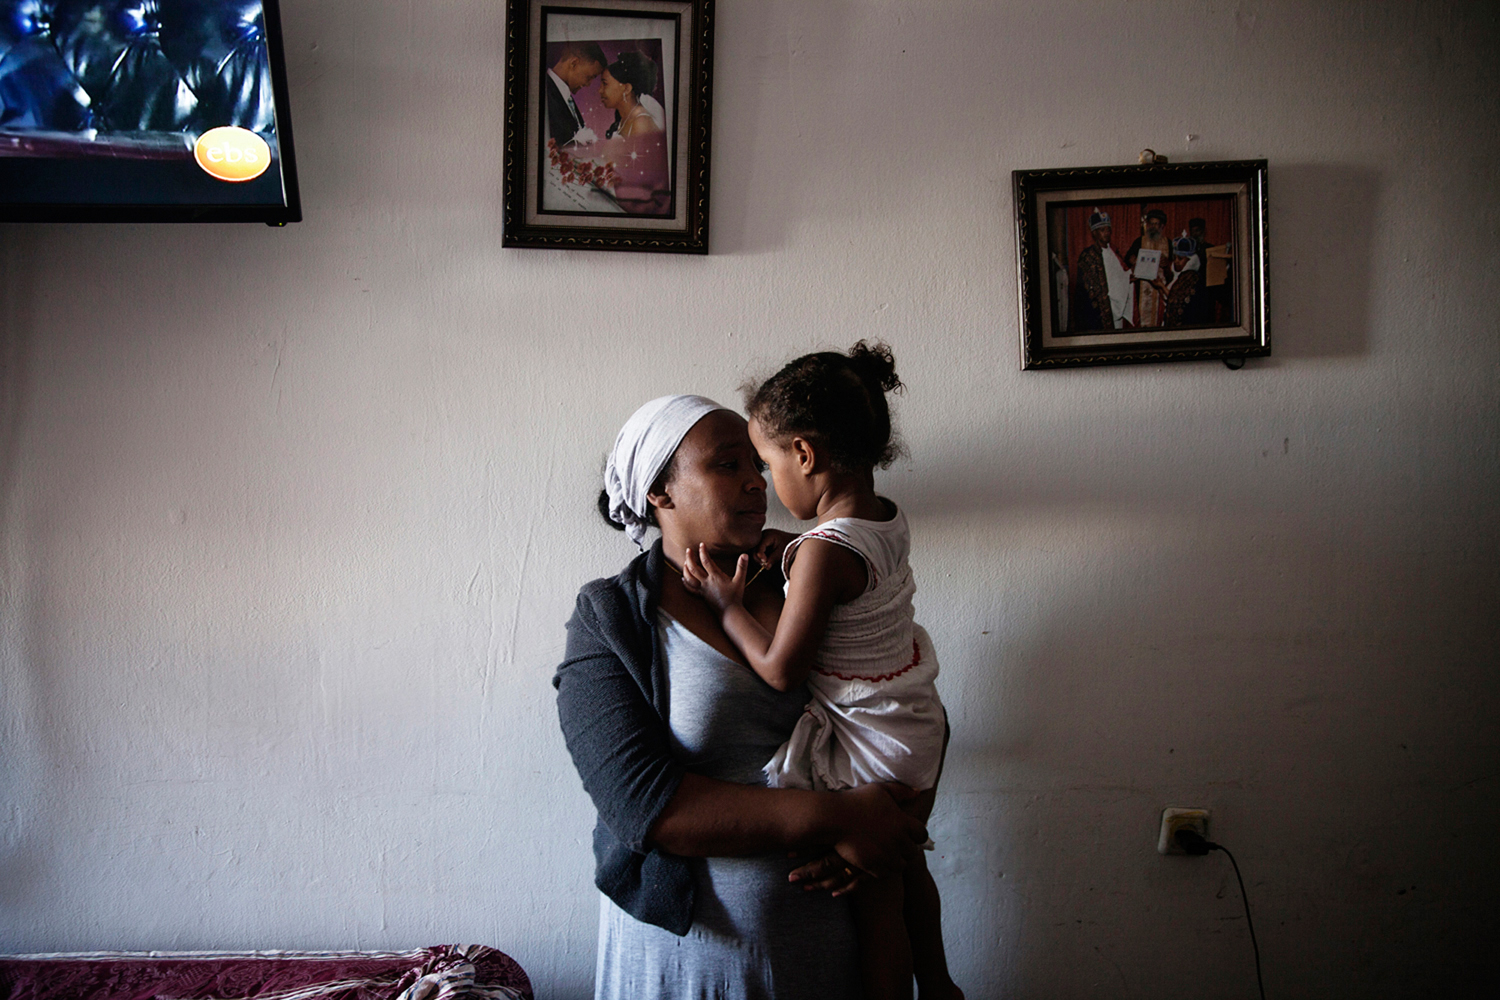 """YORDANOS YEMANE and her 3-year-old daughter, who was stabbed in the head by an Israeli man outside the central bus station in Tel Aviv last year. The perpetrator told the police that he had attacked """"a black baby"""" because she was a """"black terrorist."""" The perpetrator was found mentally unstable and unfit to stand trial."""